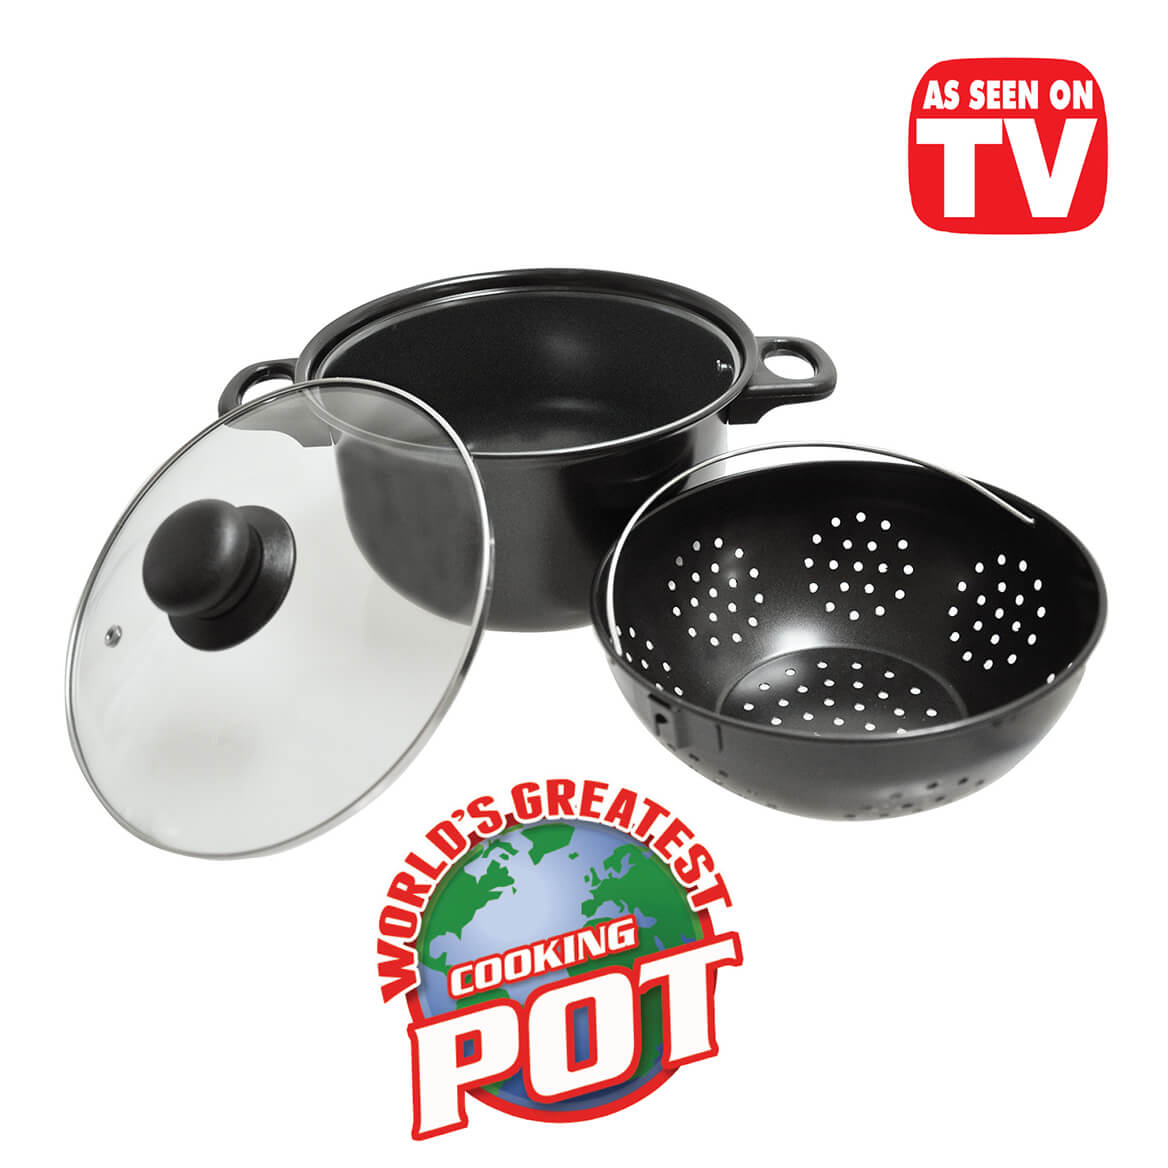 As Seen on TV Worlds Greatest Pot-368965